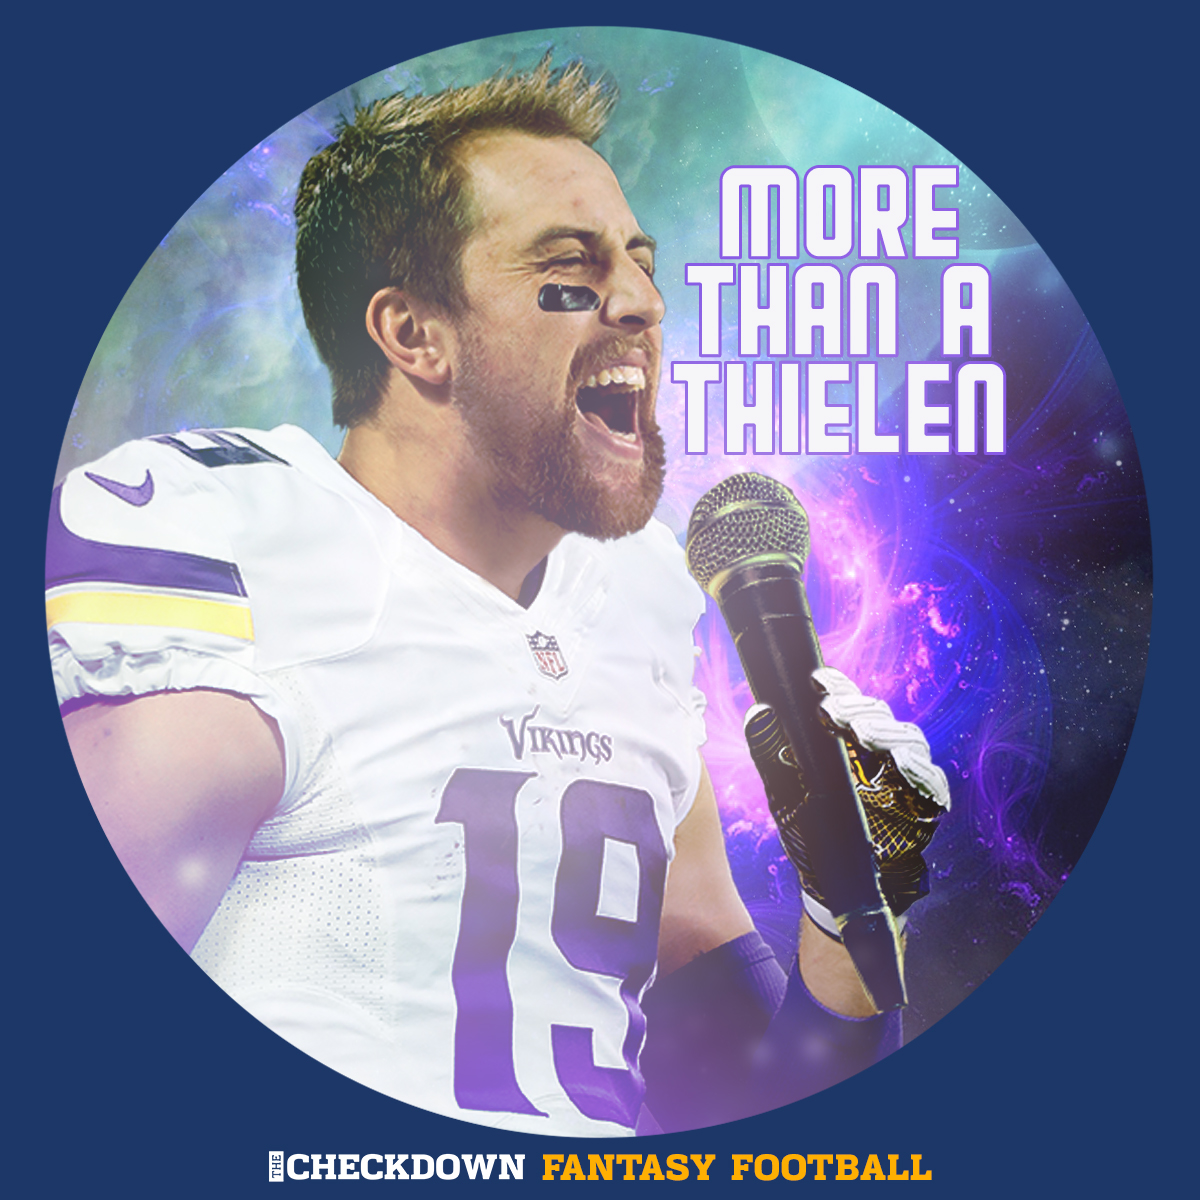 MORE-THAN-A-THIELEN.jpg